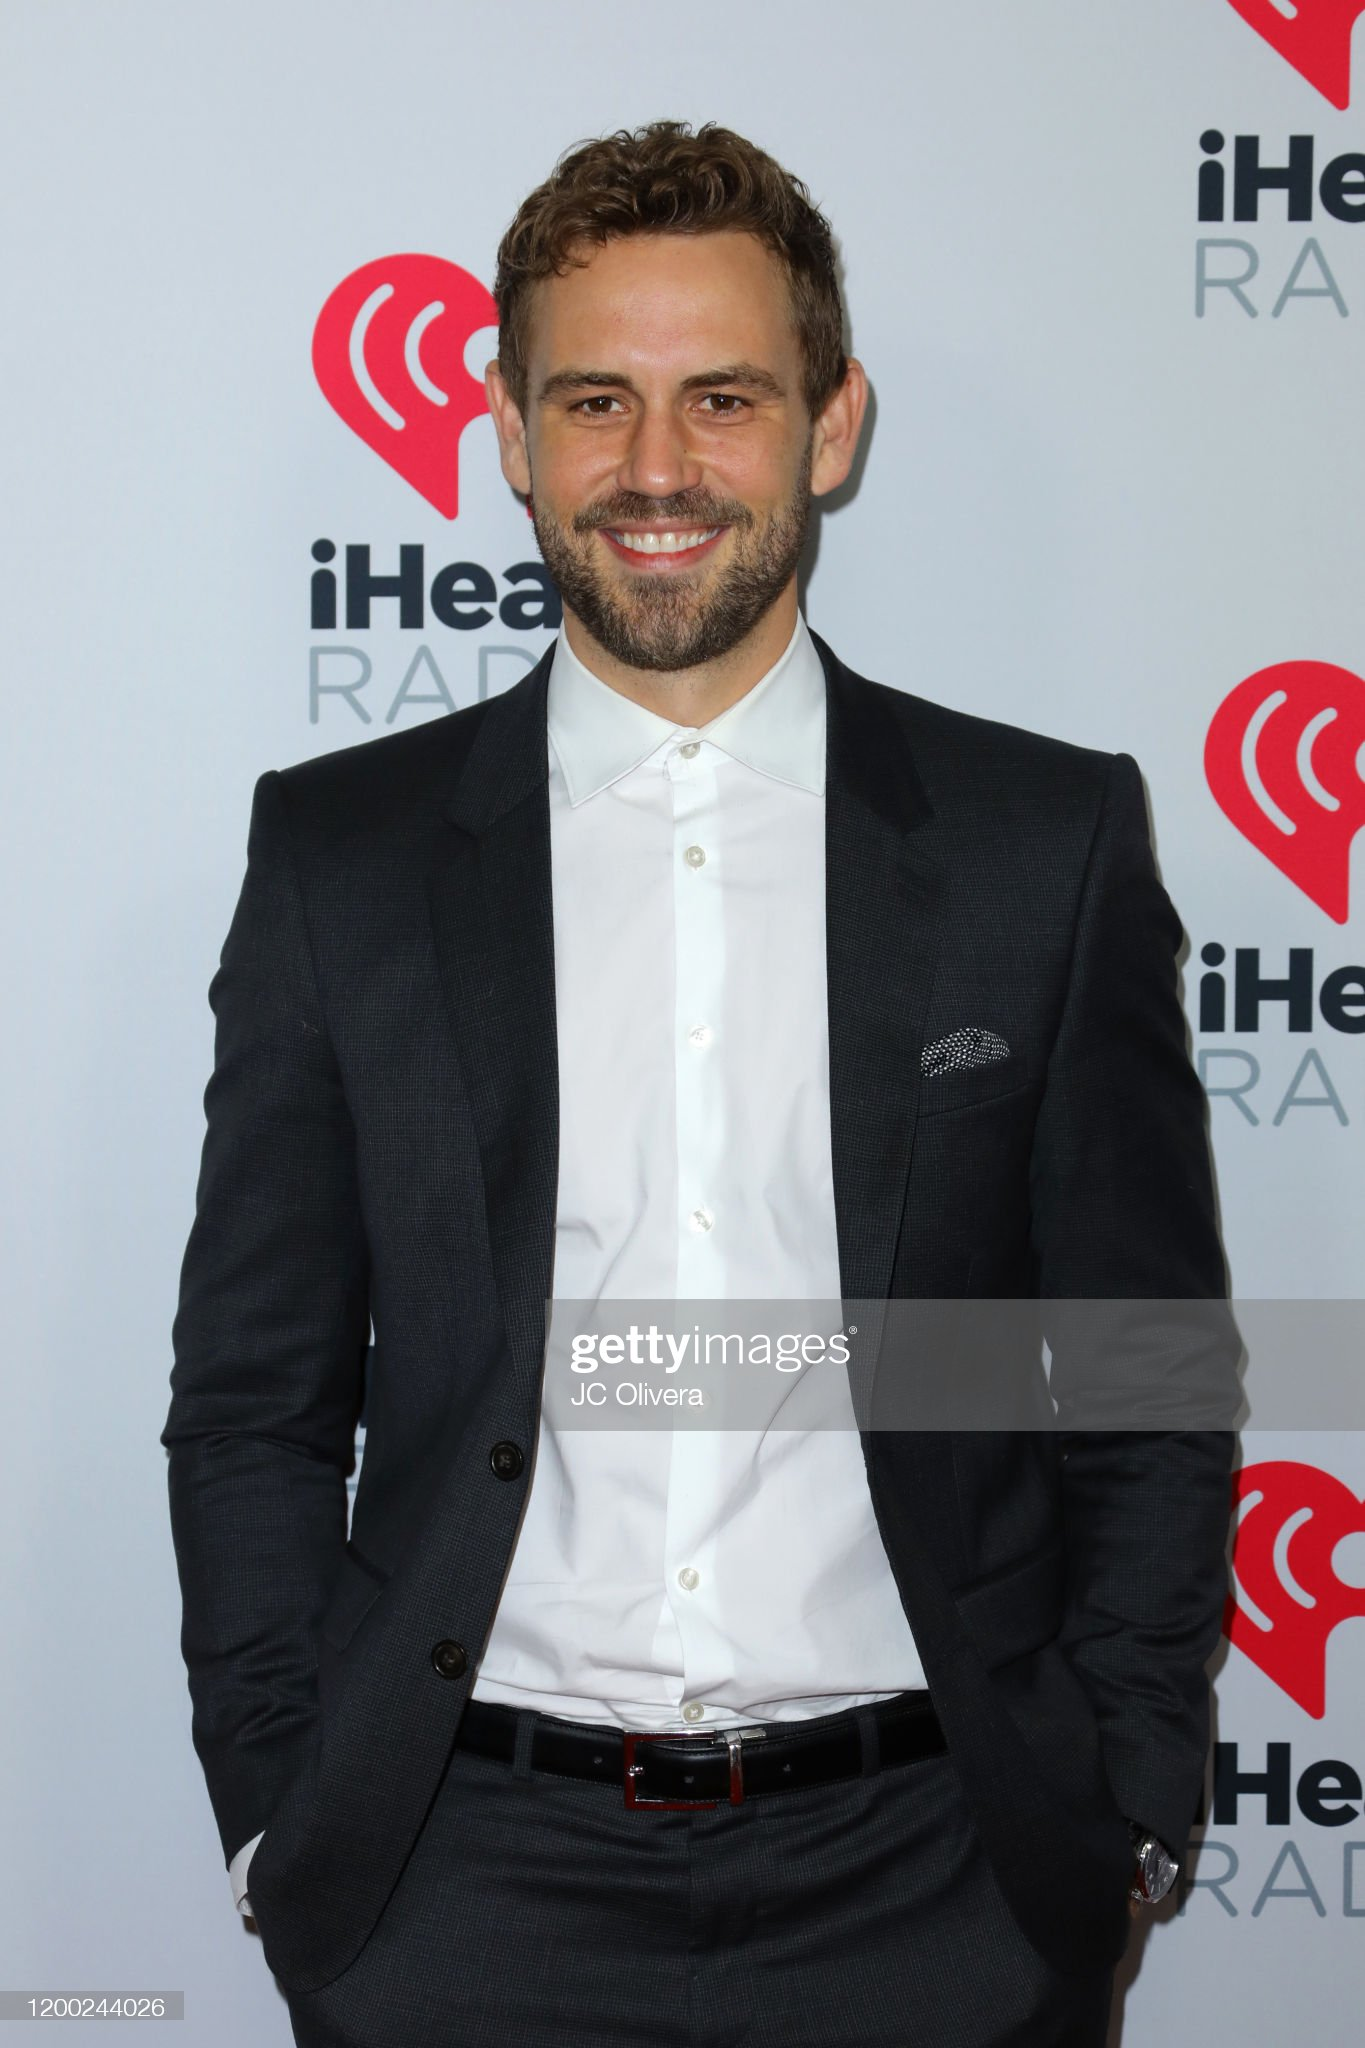 Nick Viall - Bachelor 21 - FAN Forum - Discussion #27 - Page 69 Nick-viall-attends-the-2020-iheartradio-podcast-awards-at-iheartradio-picture-id1200244026?s=2048x2048